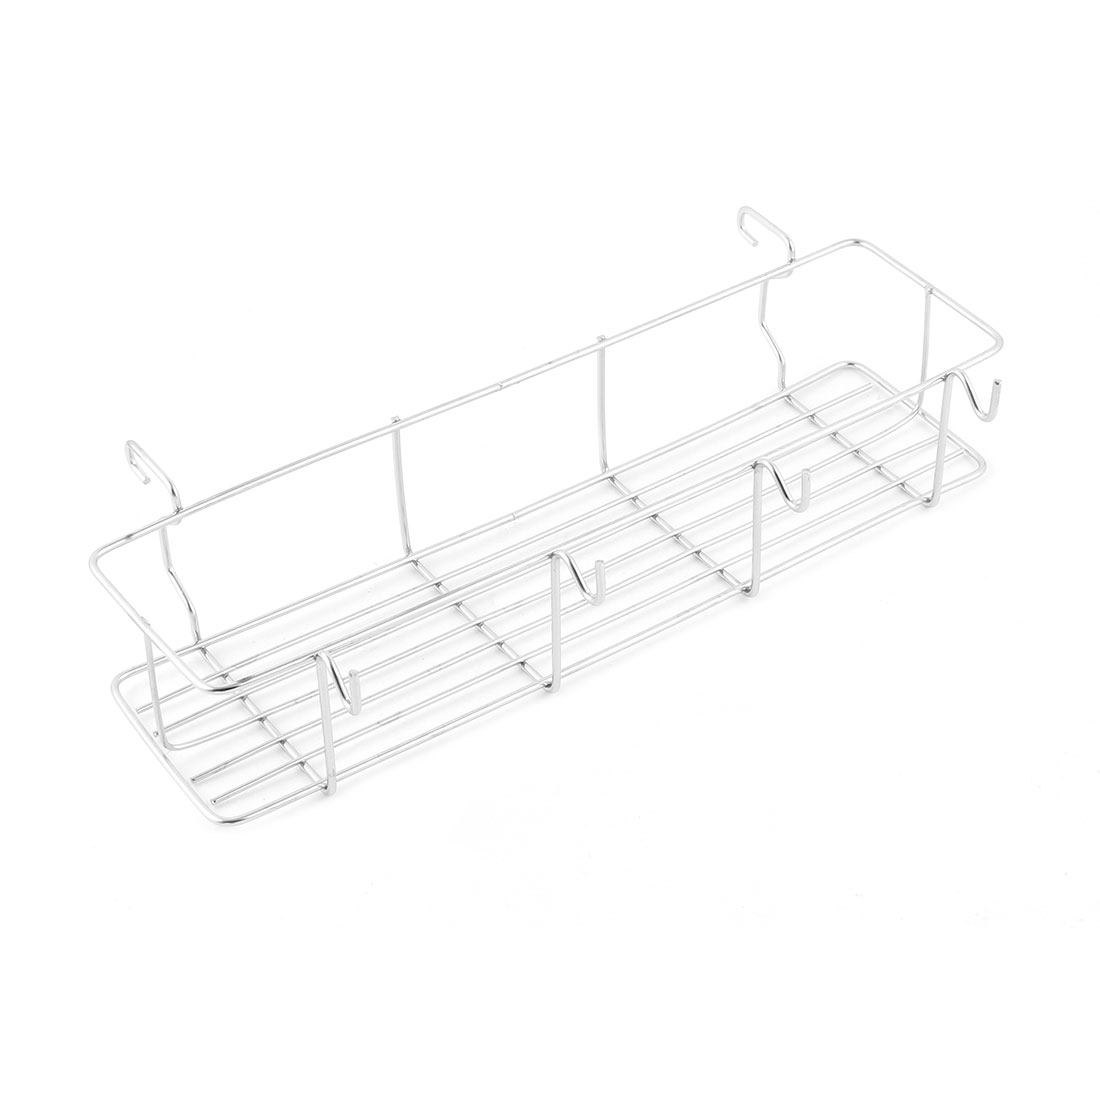 Outdoor Camping Picnic BBQ Barbucue Metal Grill Hanger Storage Shelf Holder Rack Organizer